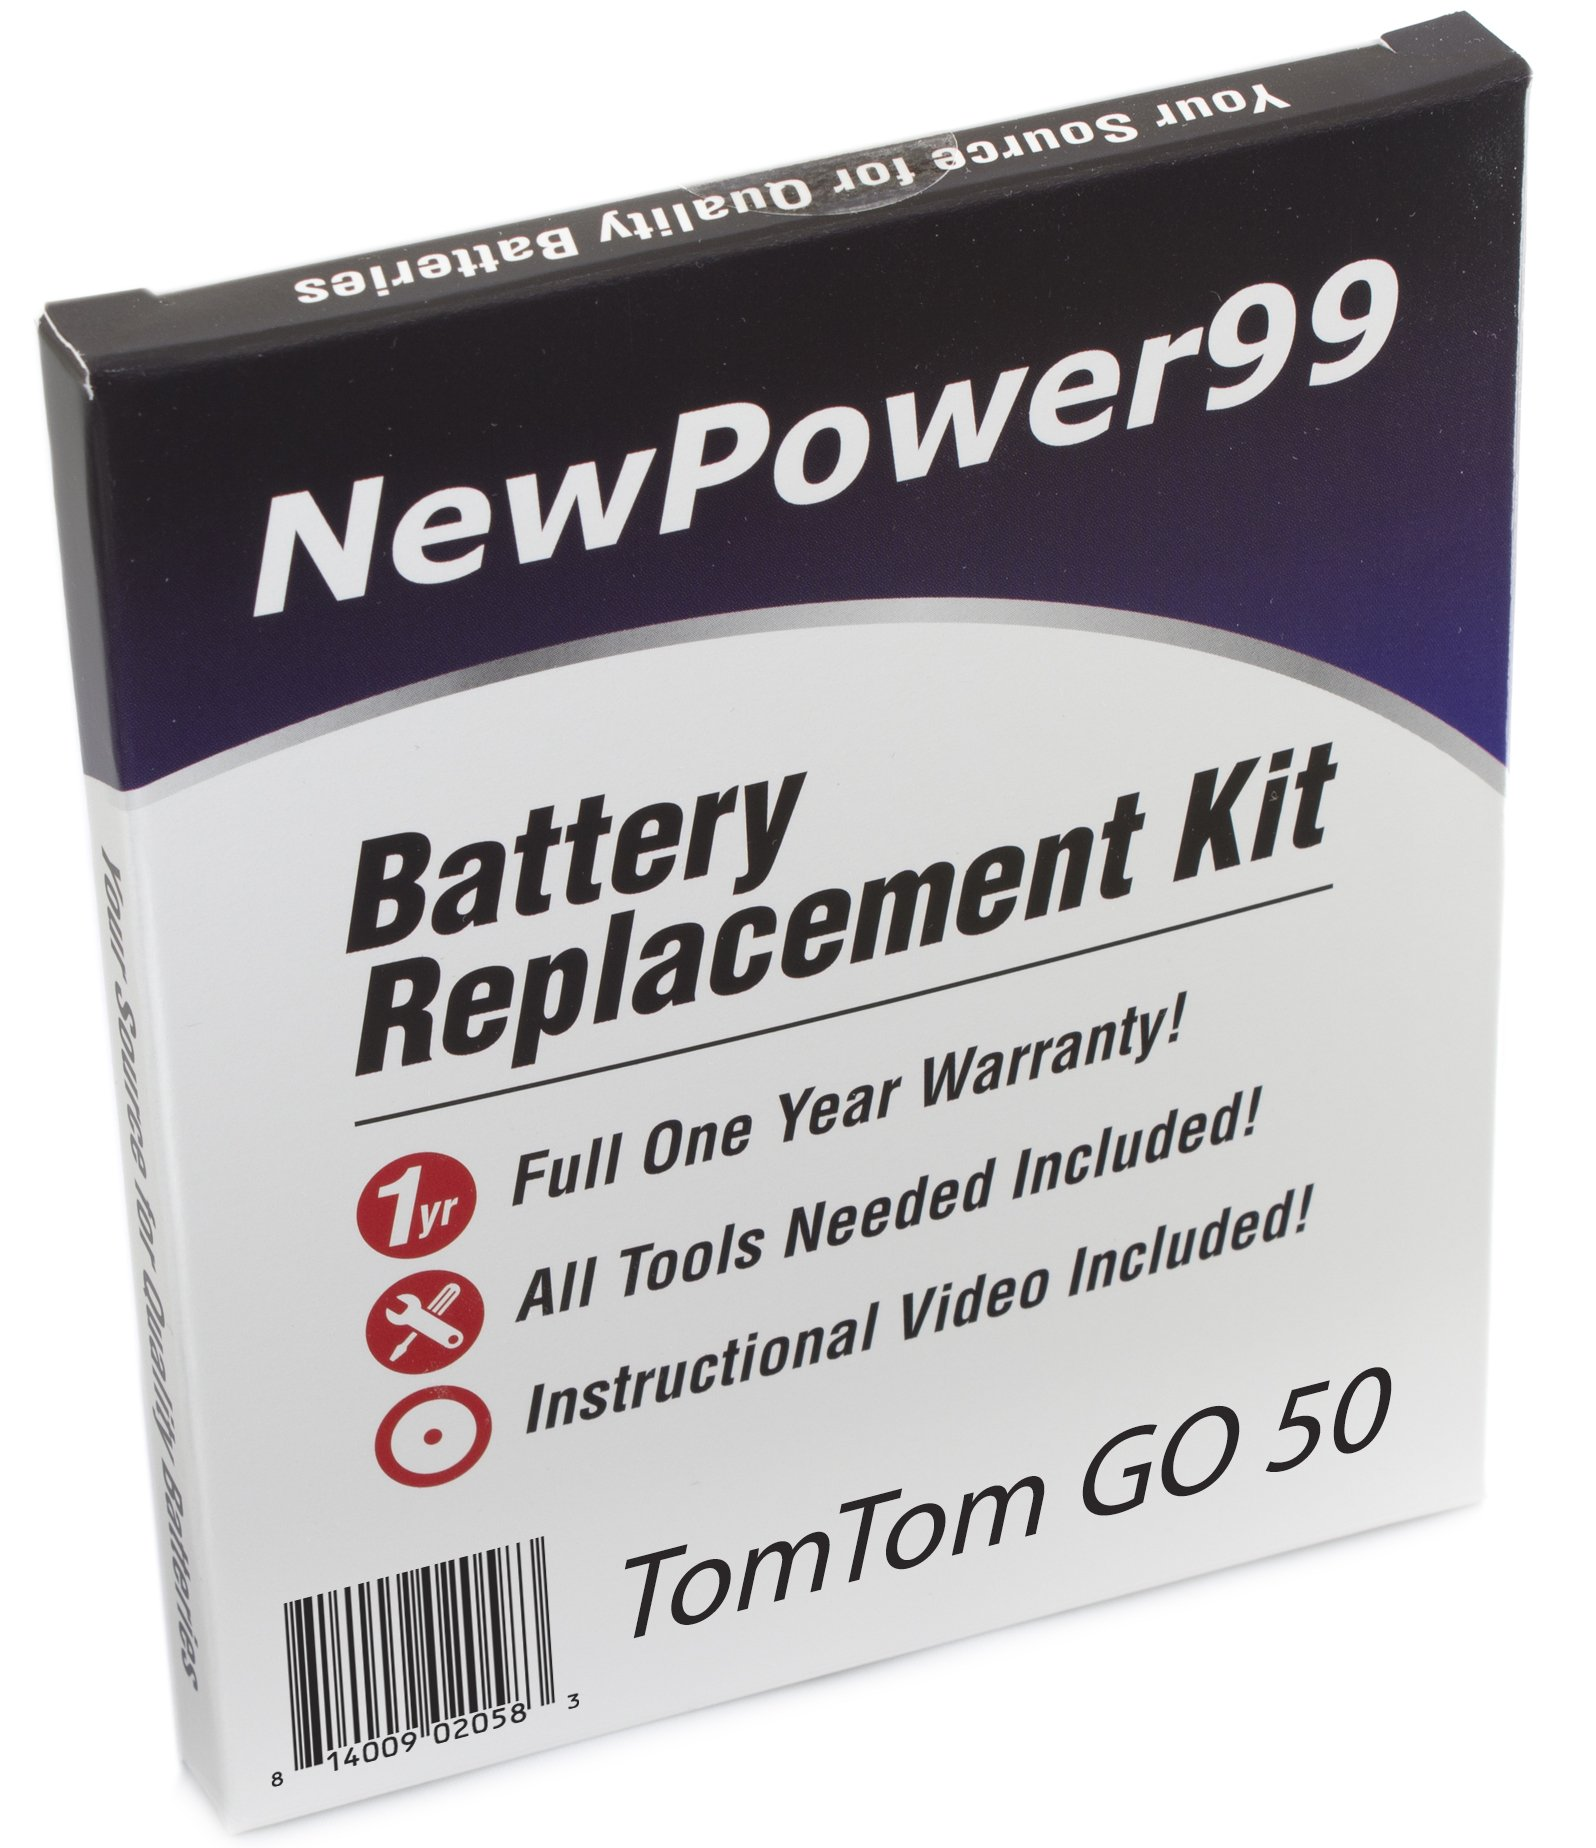 NewPower99 Battery Replacement Kit with Battery, Video Instructions and Tools for Tomtom Go 50